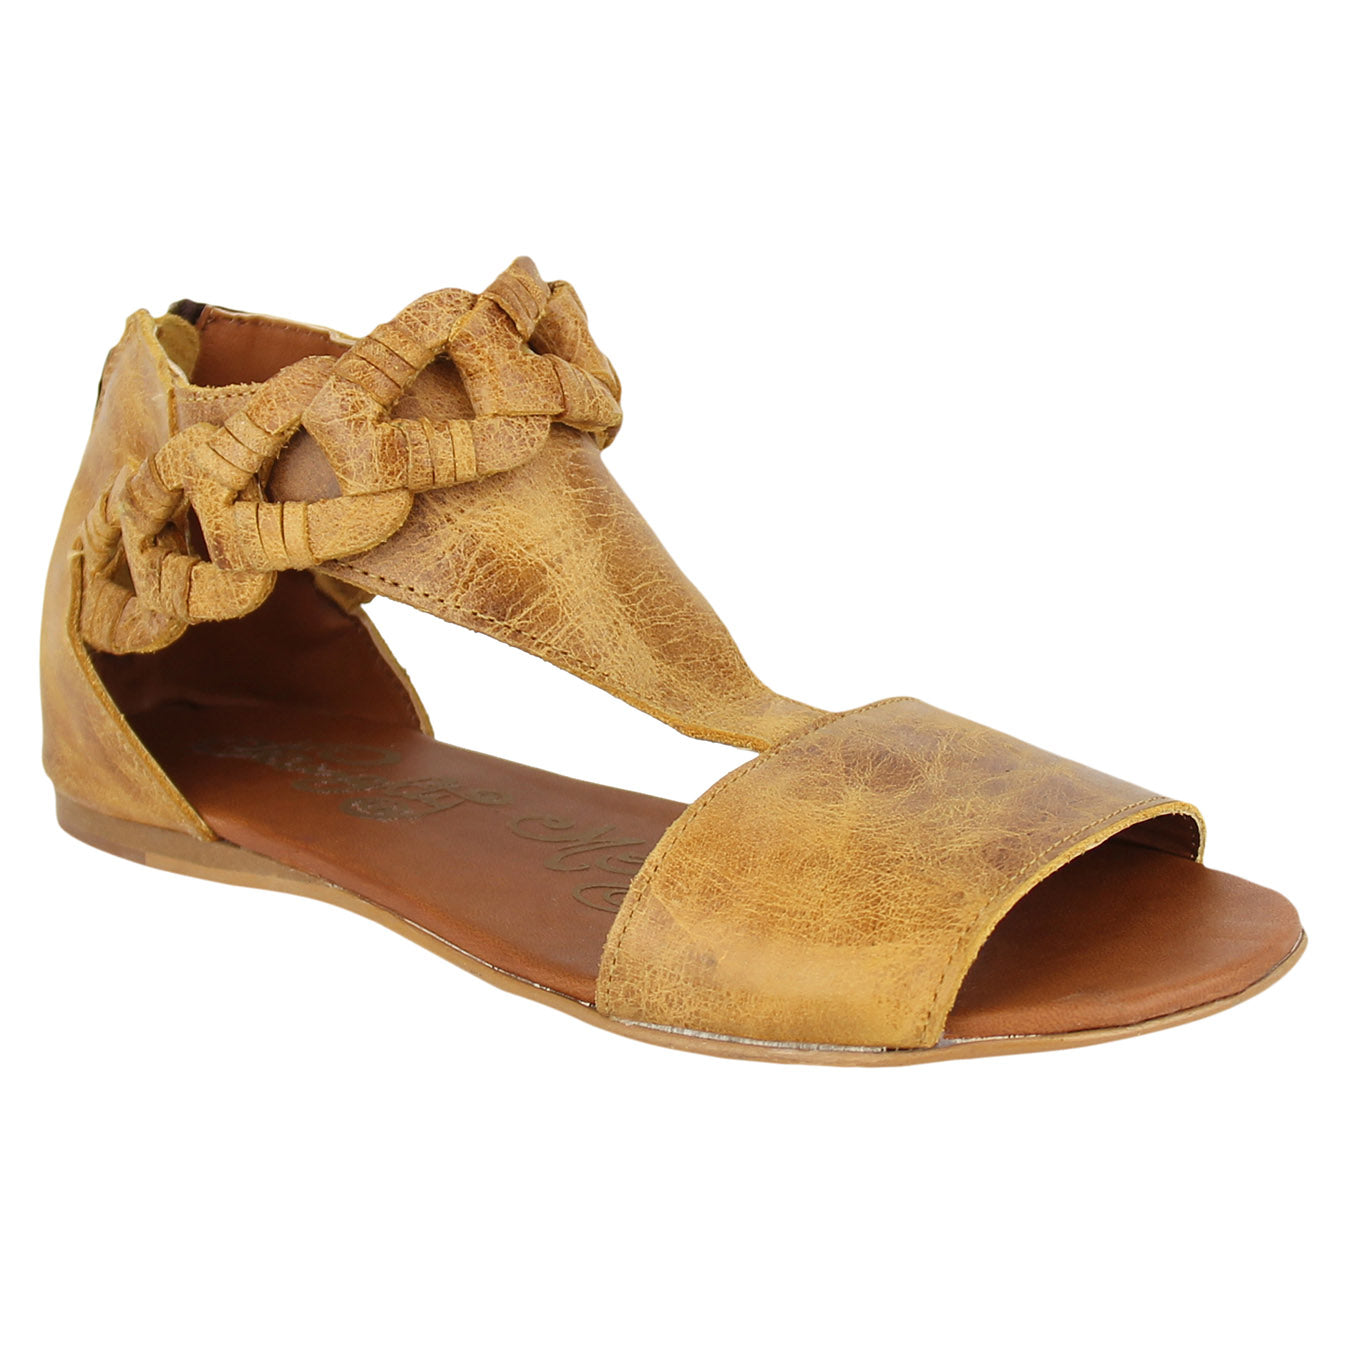 naughty_monkey_women_sandal_ankle-strap_crafted_vintage-leather_tan